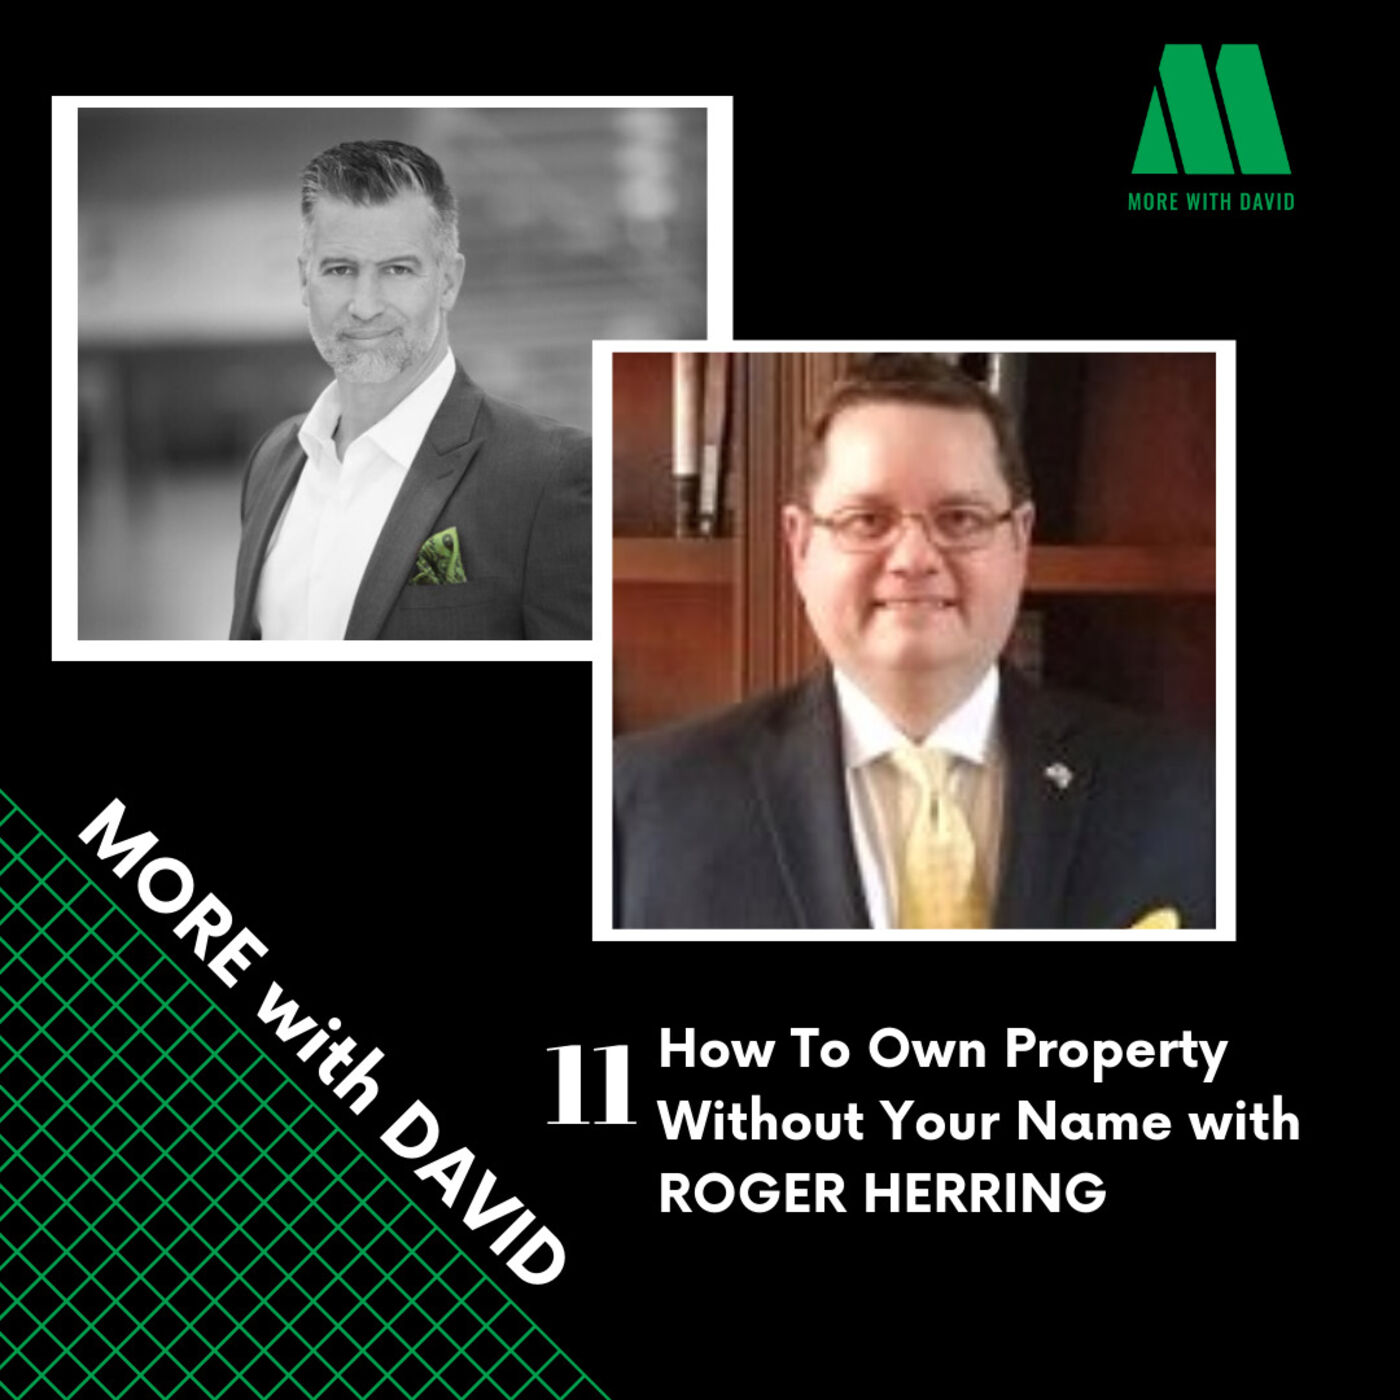 How To Own Property Without Your Name